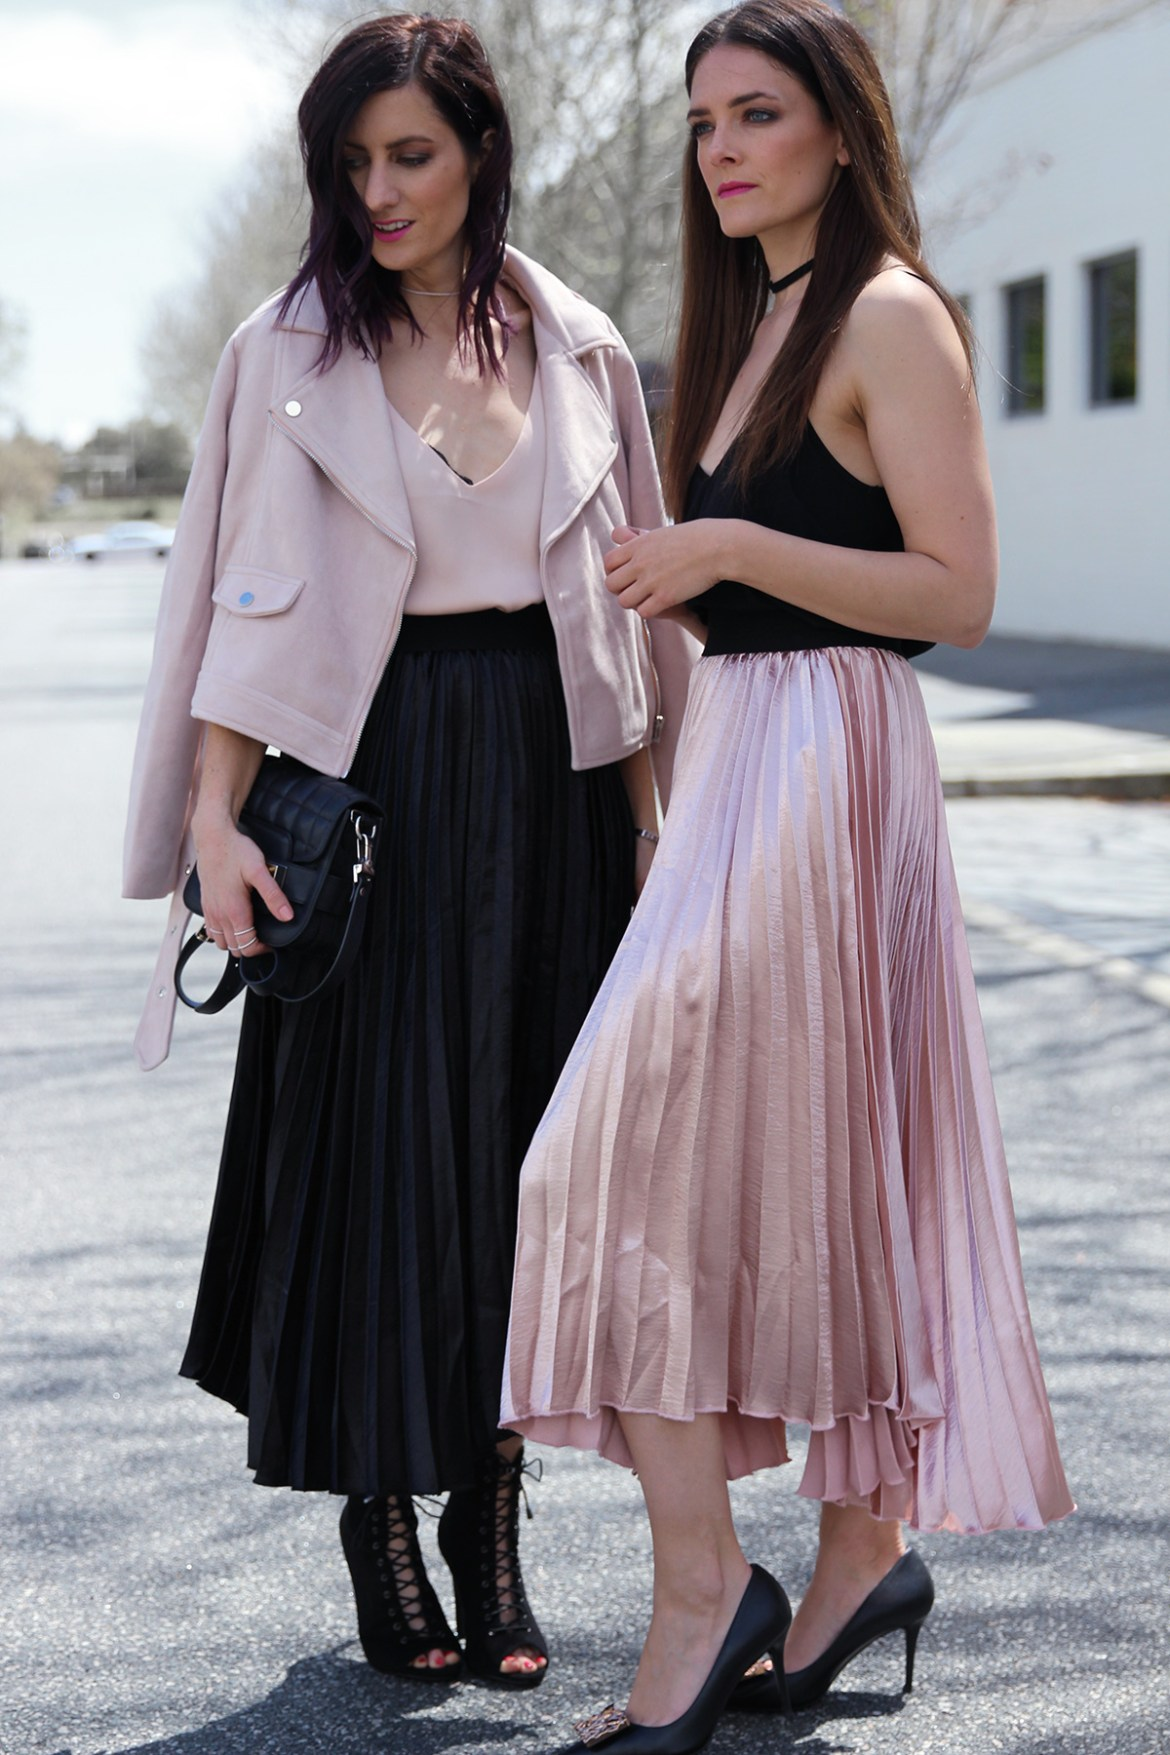 Perth fashion bloggers She Does (left) @shedoestyle and Inspiring Wit (right) @inspiringwit in the pleated metallic skirts from Hello Parry #metallicskirt #perthblog #fashionbloggers